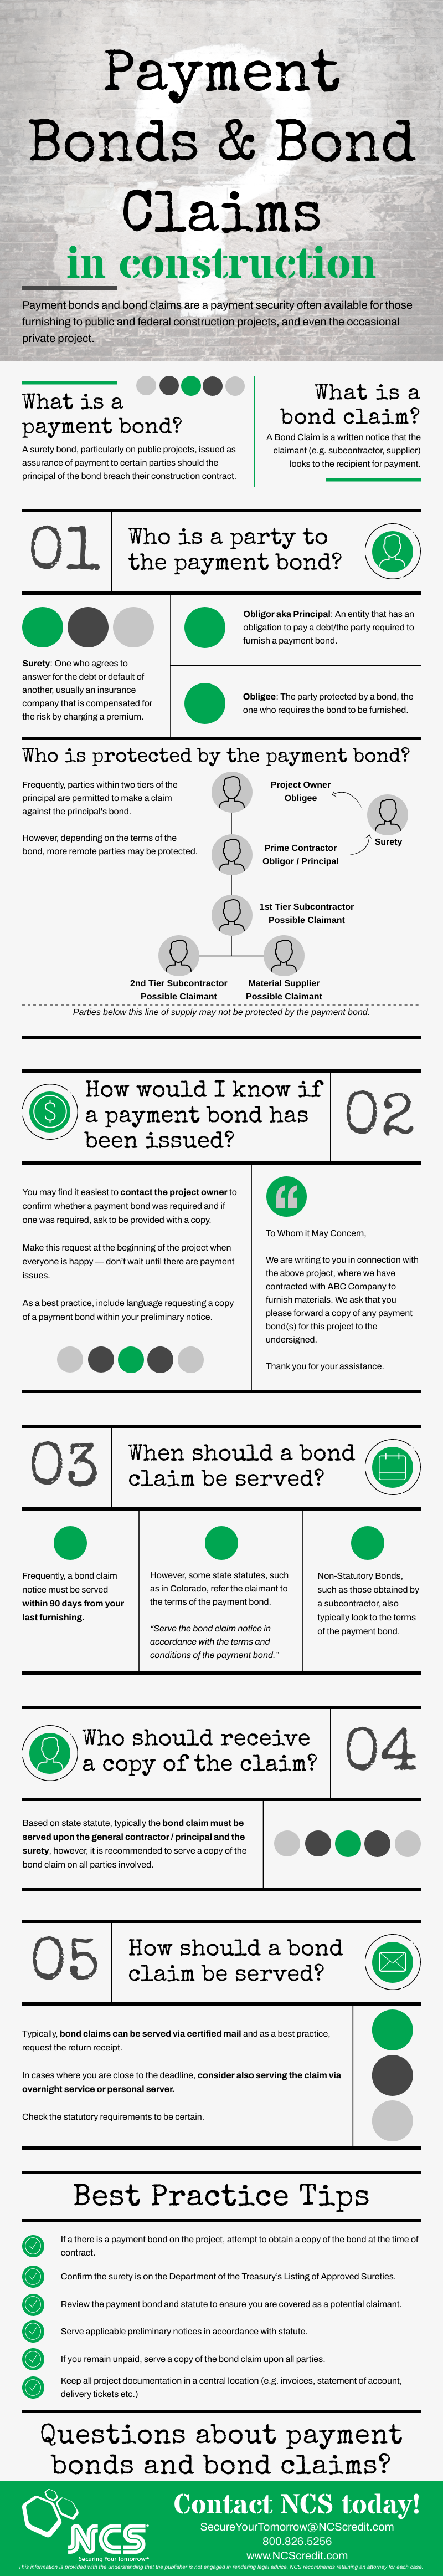 payment bonds and bond claims in construction